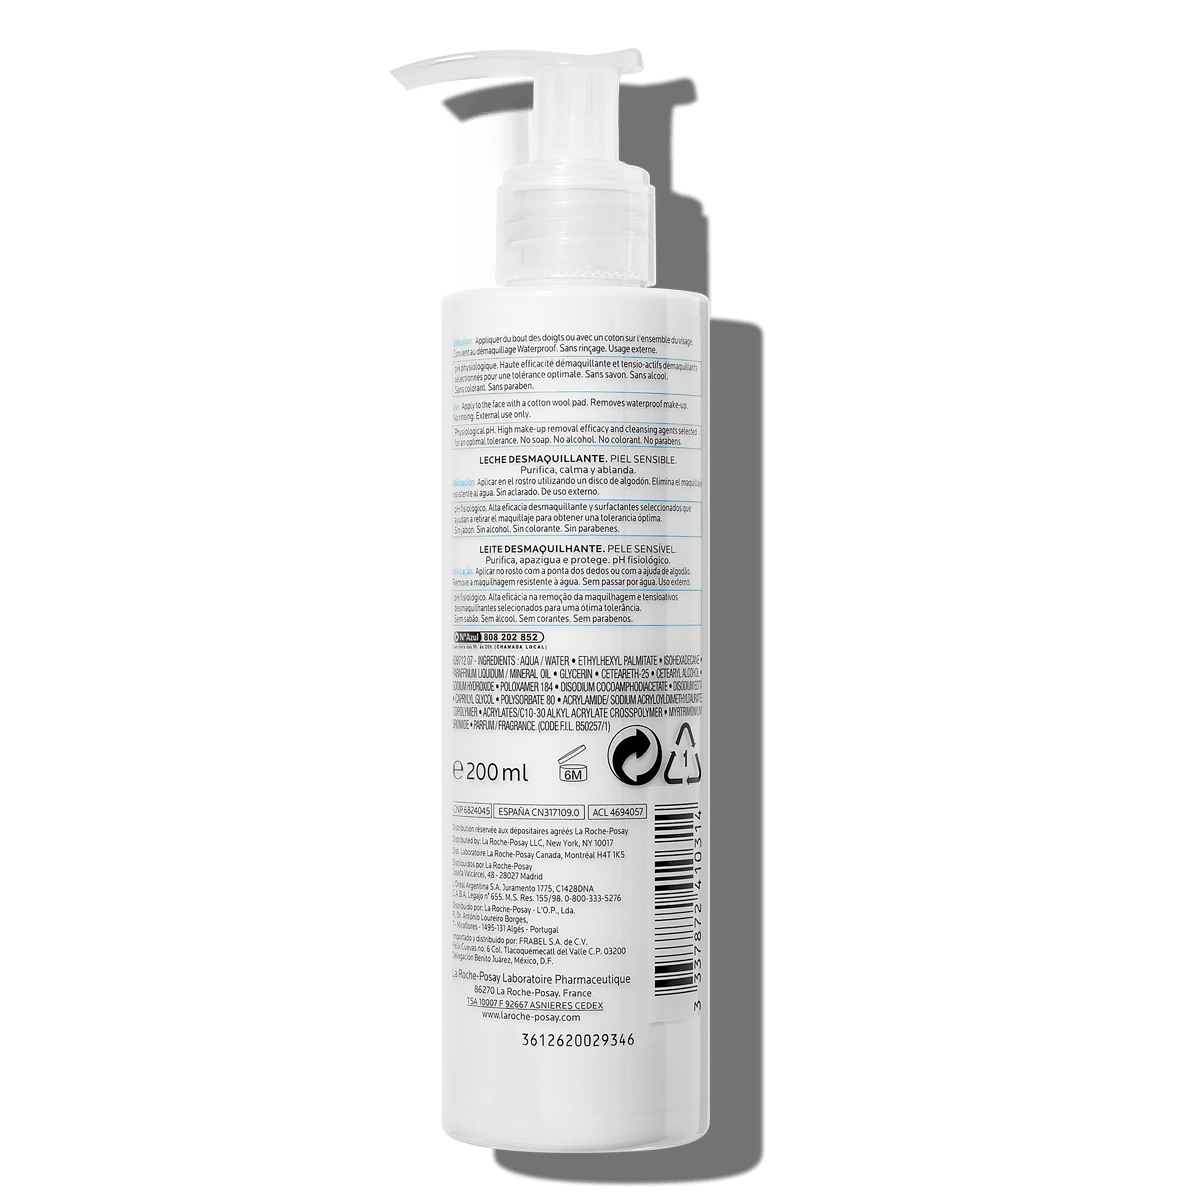 La Roche Posay ProductPage Face Cleanser Physiological Make Up Remover